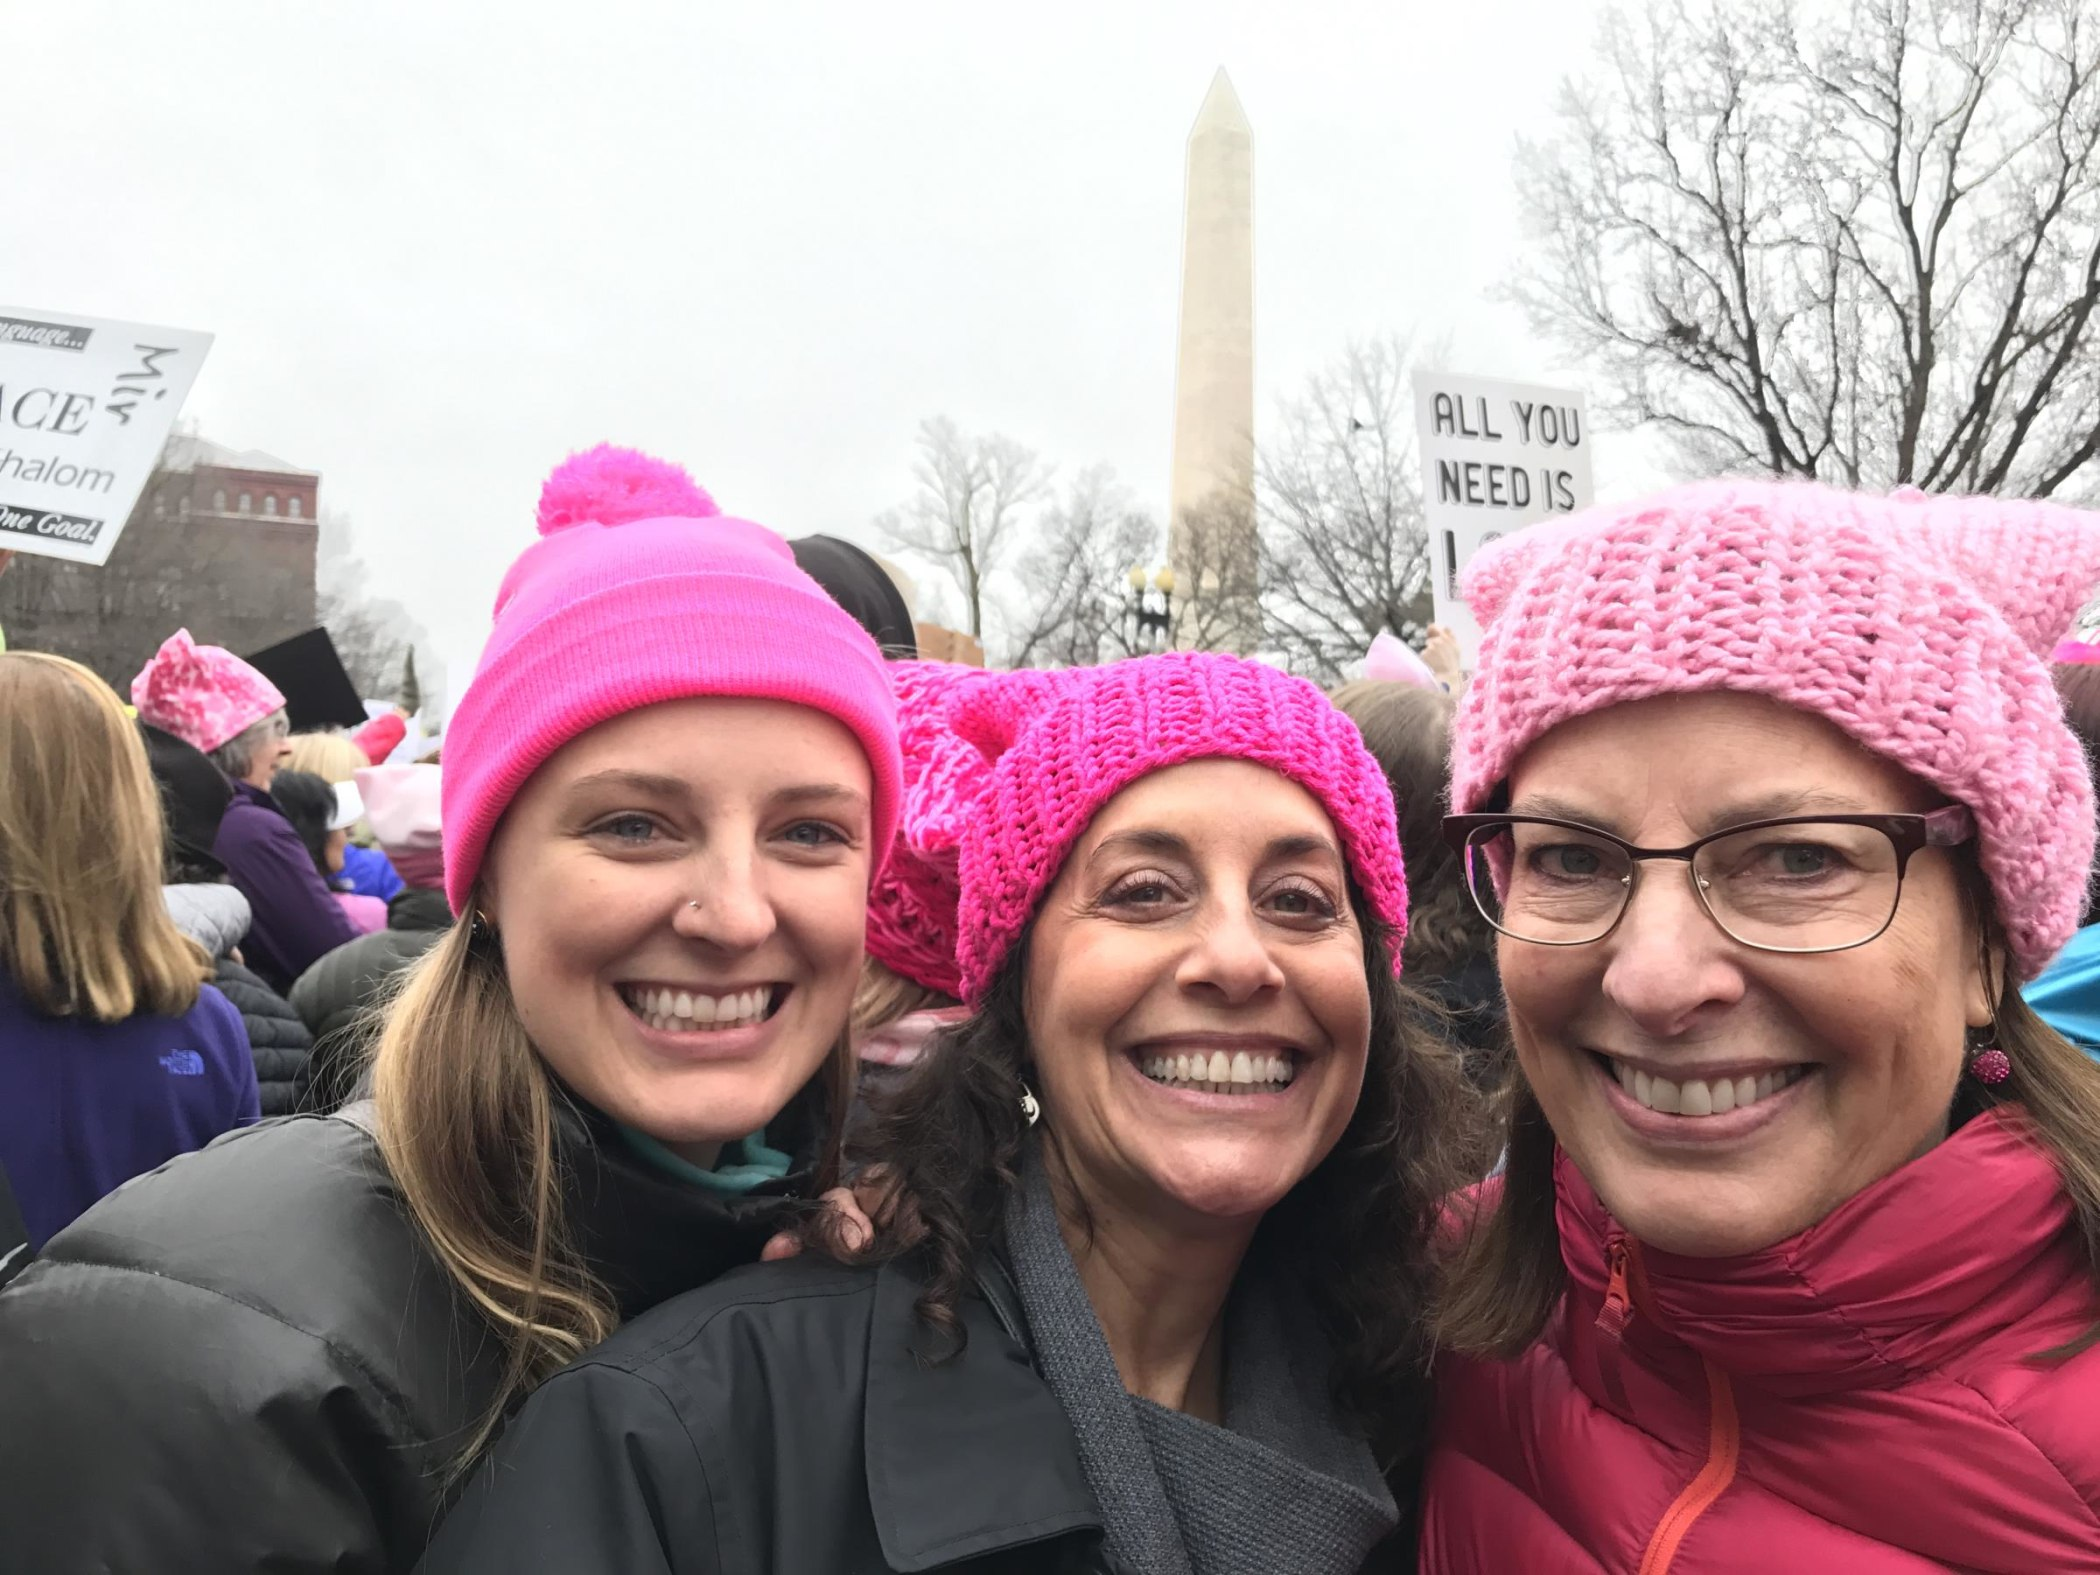 Libby Cummings, left, attended the march with friend Tricia Naddaff, and her mother, Debbie Mann.